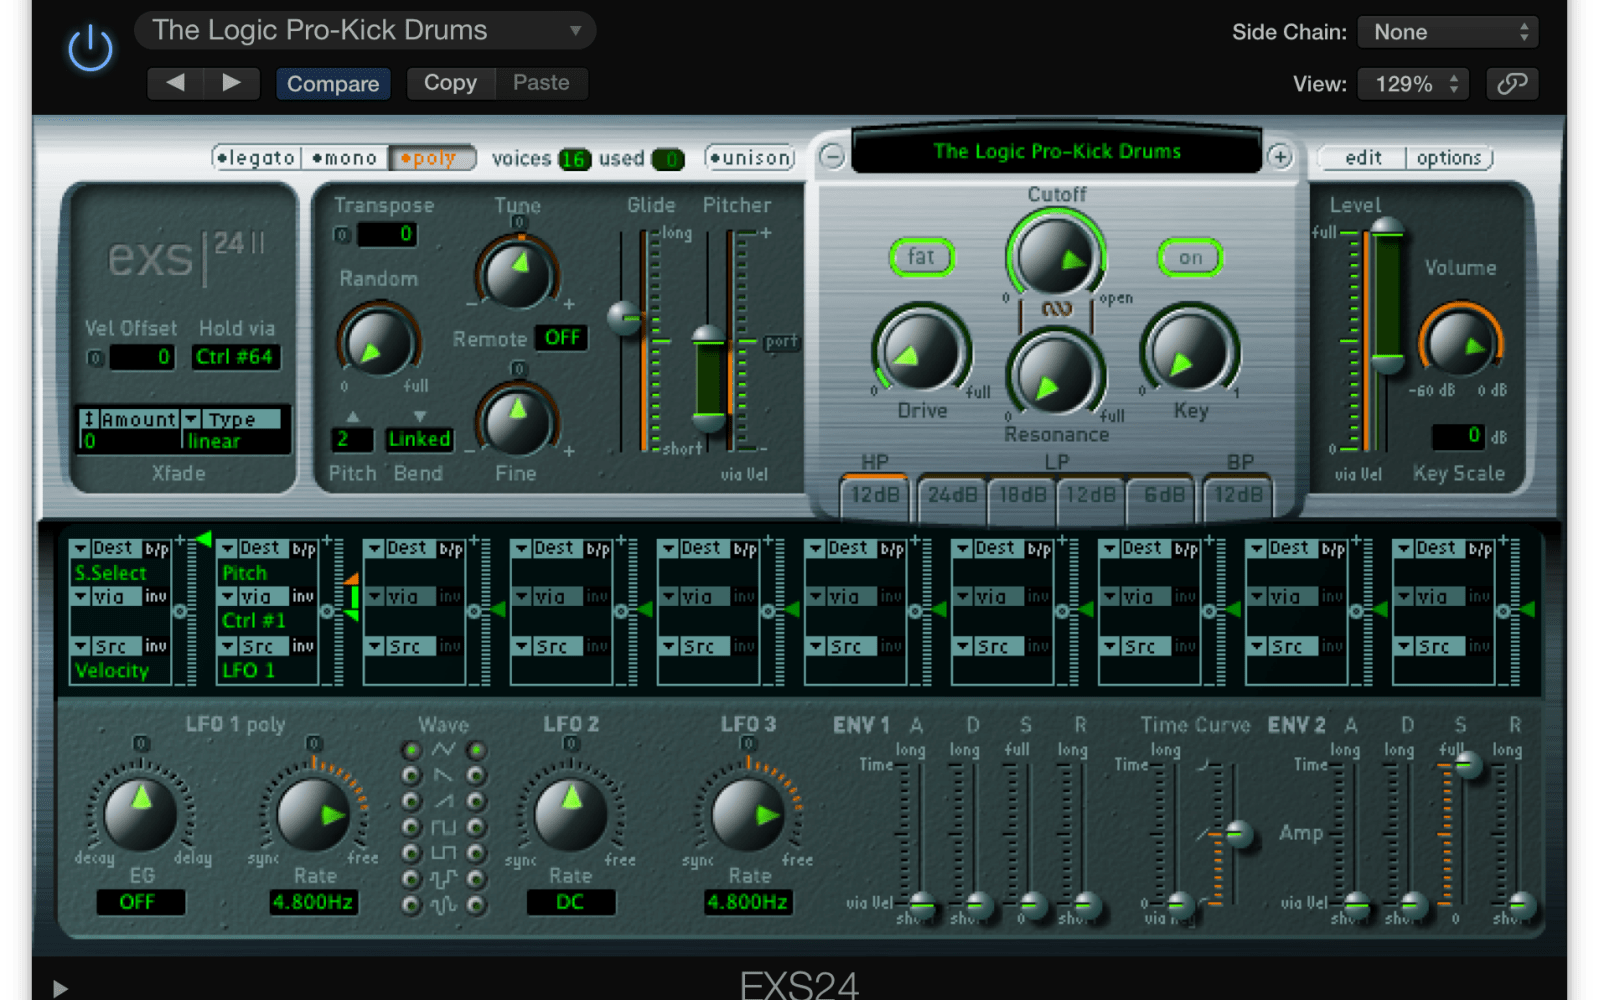 The Logic Pros: How to create custom sampler instruments